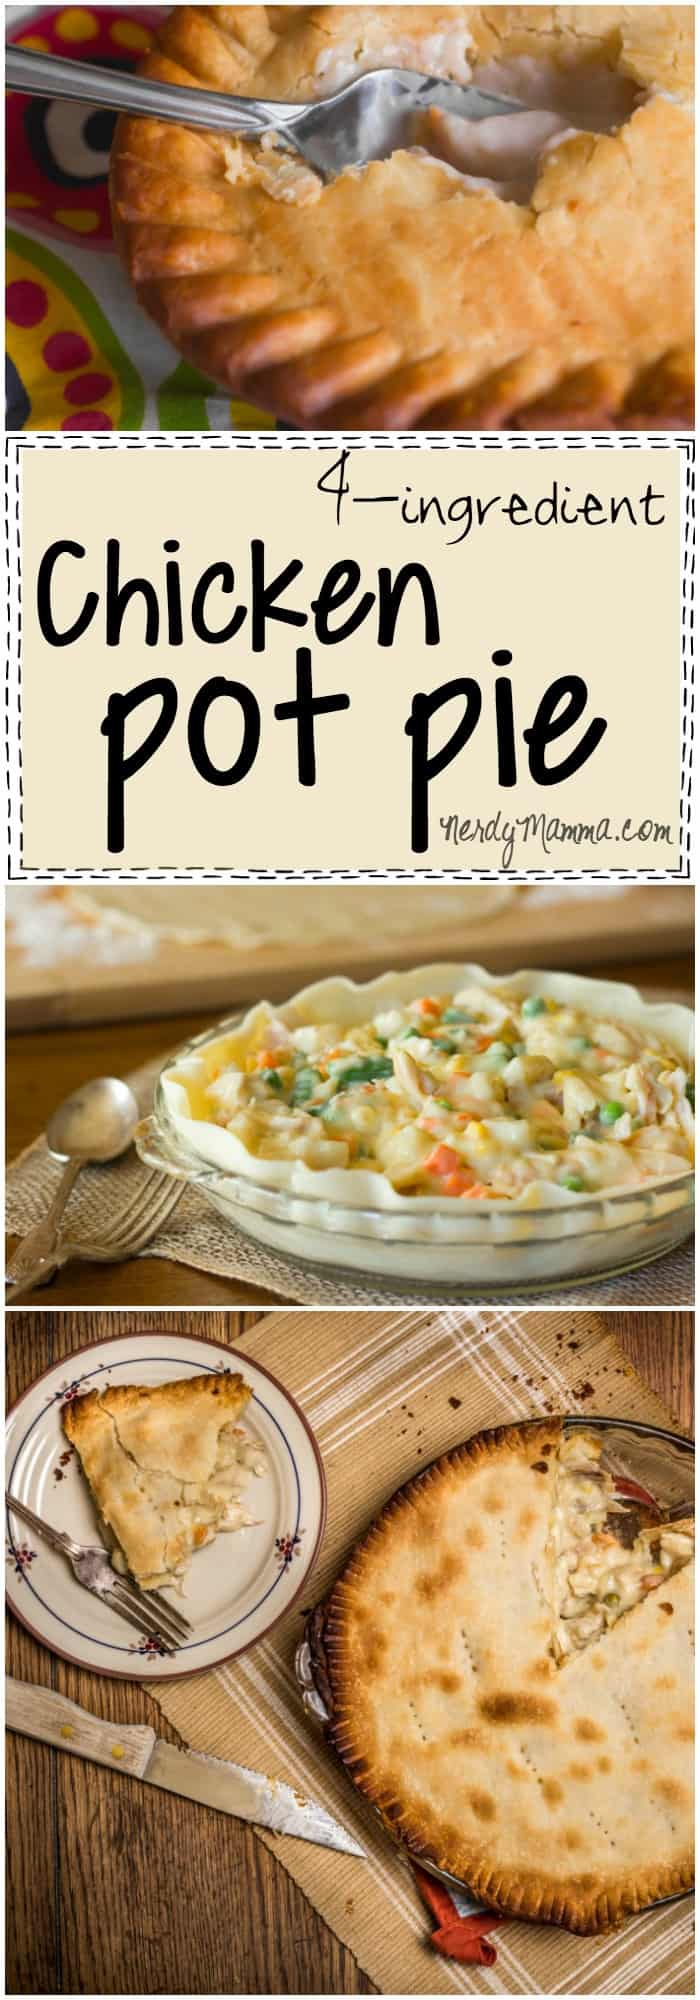 I love this recipe for 4-Ingredient Chicken Pot Pie. So fast and quick--I might be making this tonight.